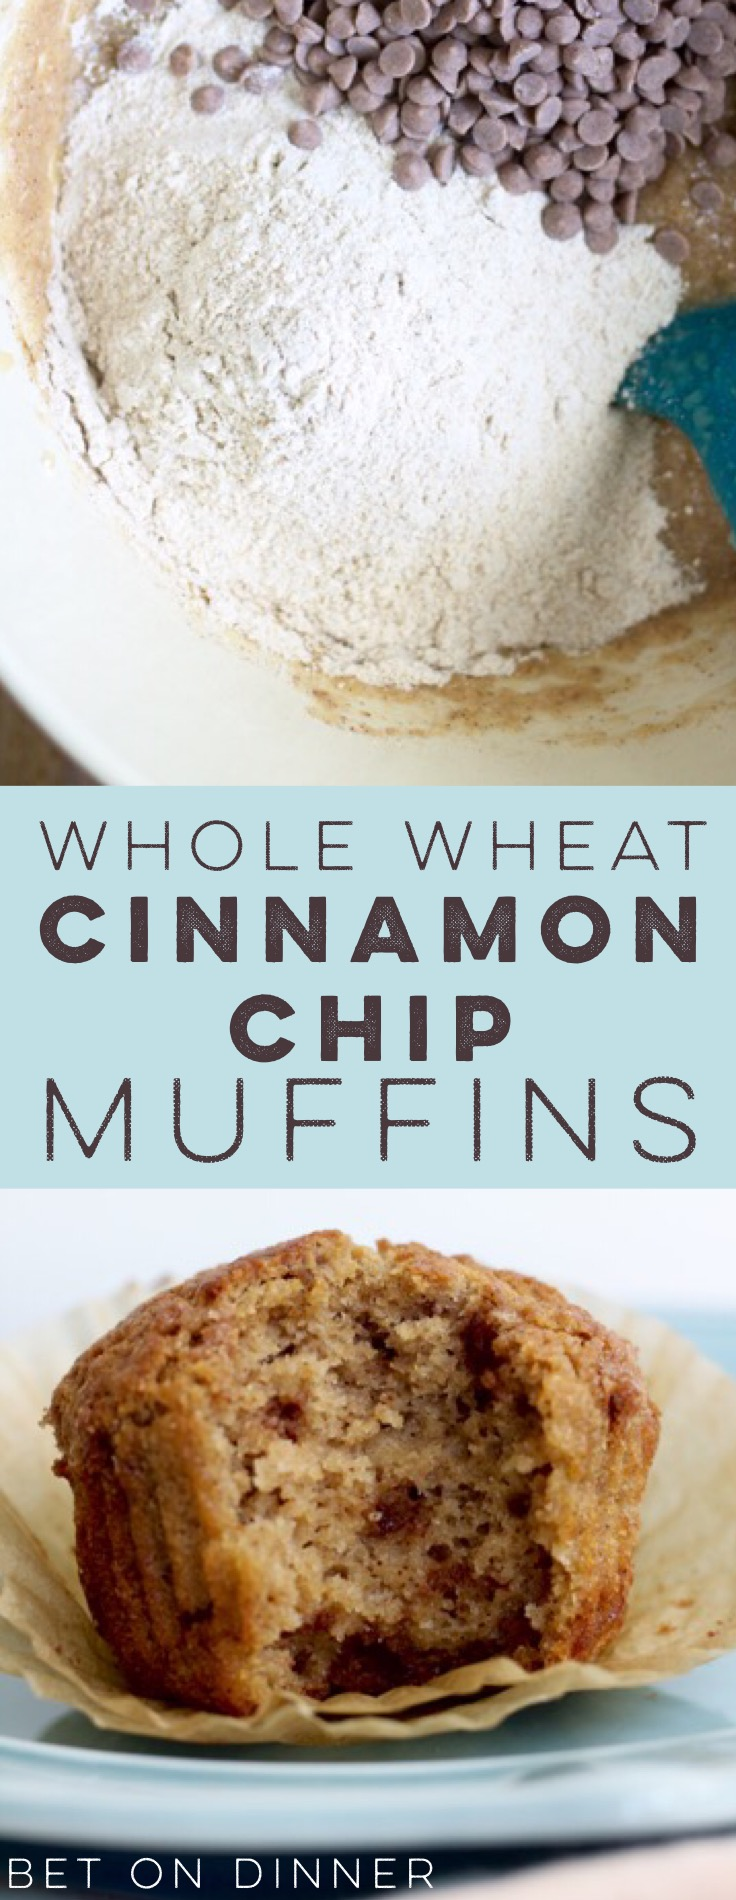 These one-bowl whole wheat cinnamon chip muffins are tender and coffeecake-y, packed full of sweet cinnamon chips - a perfect easy breakfast or lunchbox treat!